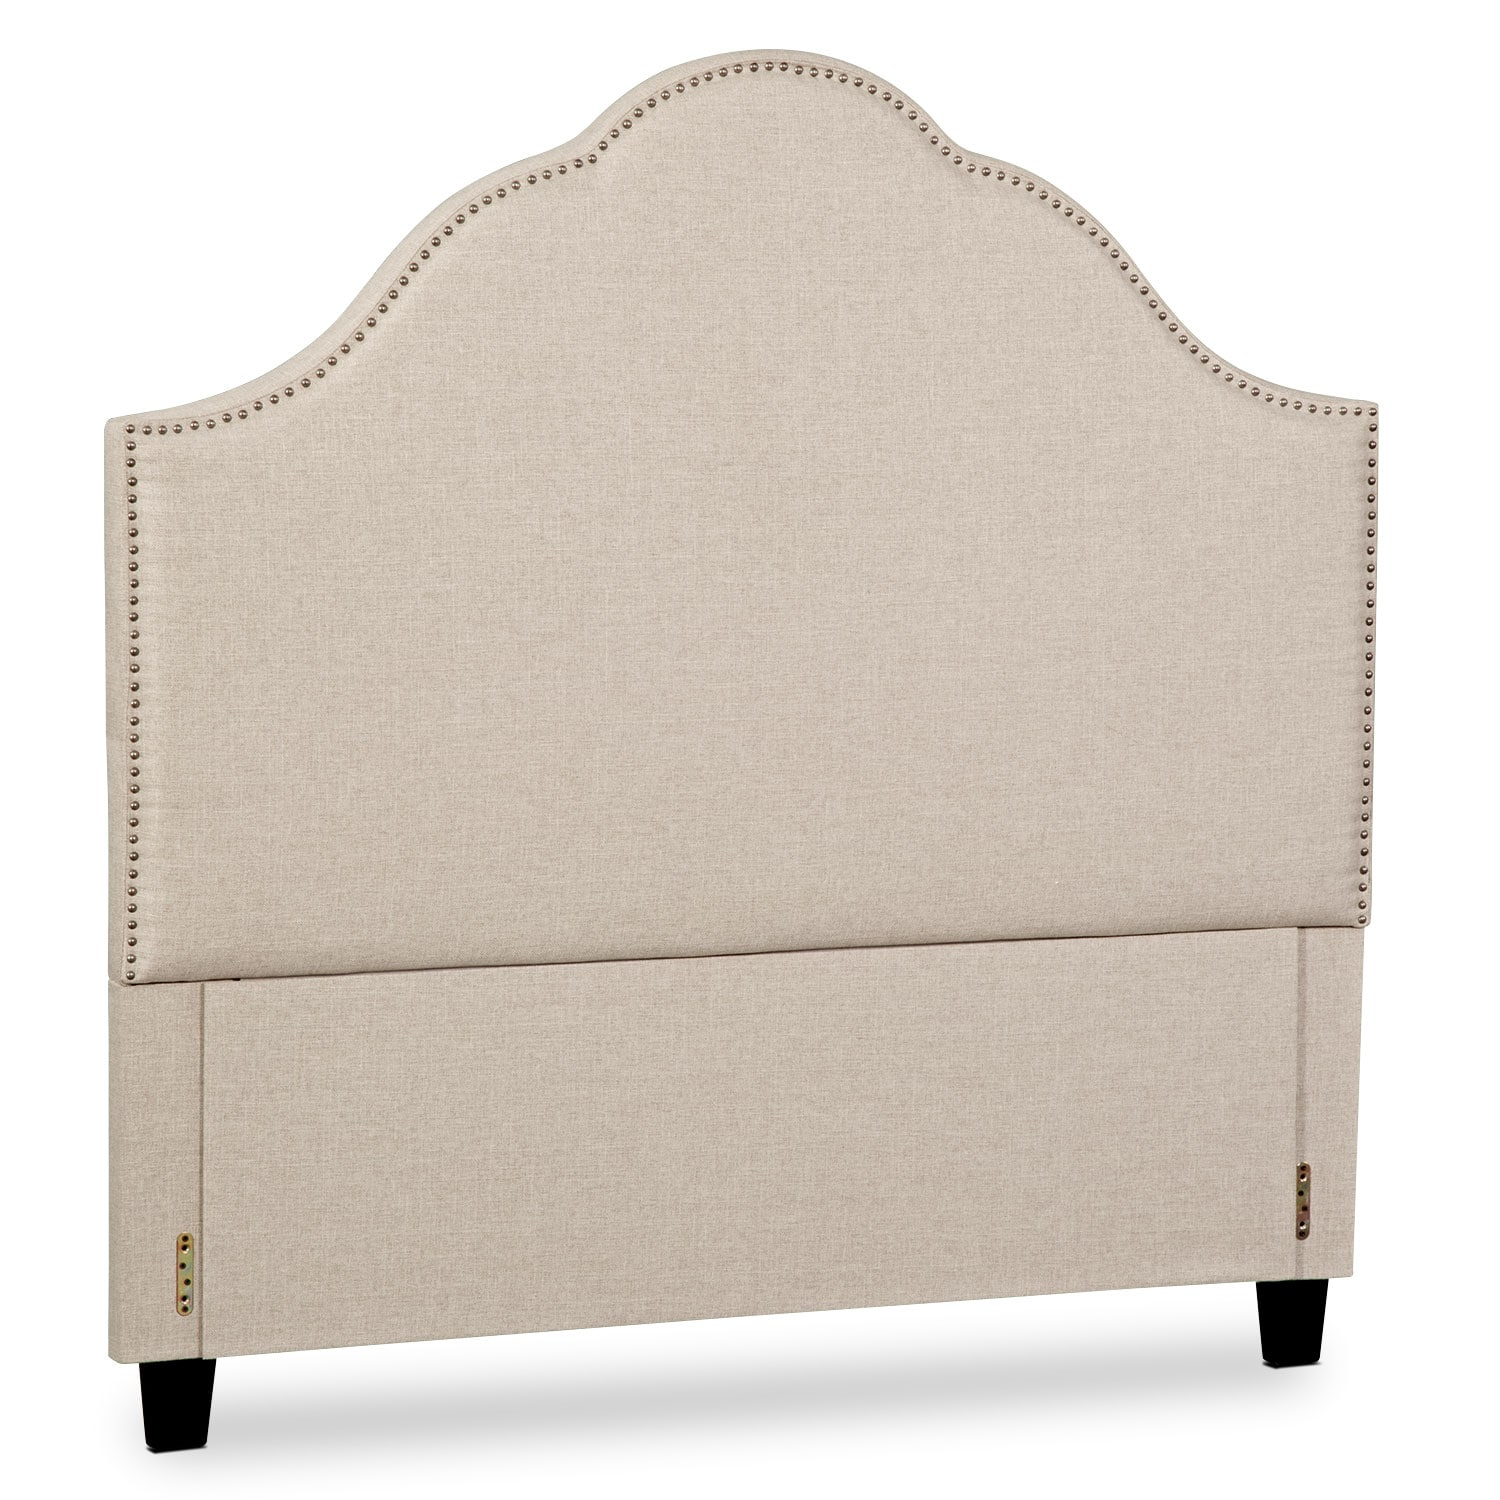 Maya King Upholstered Headboard - Beige